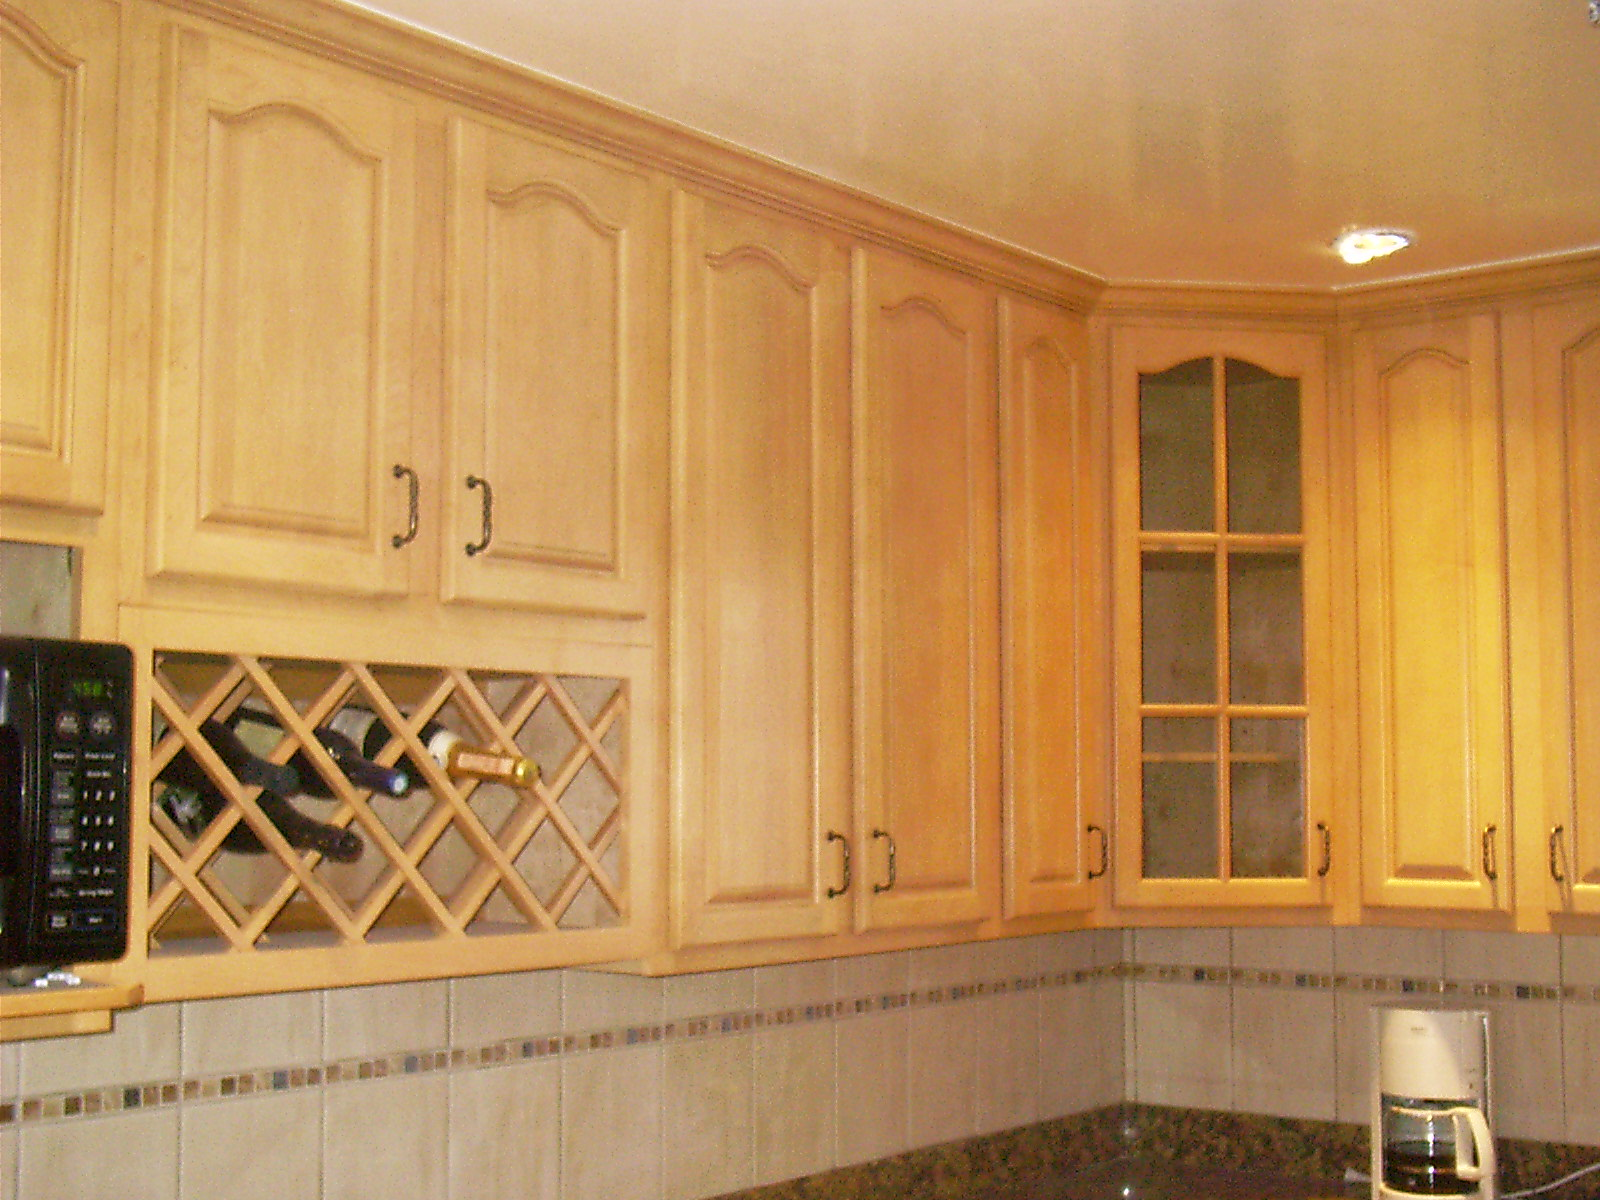 Shelving for kitchen cabinets photo - 2